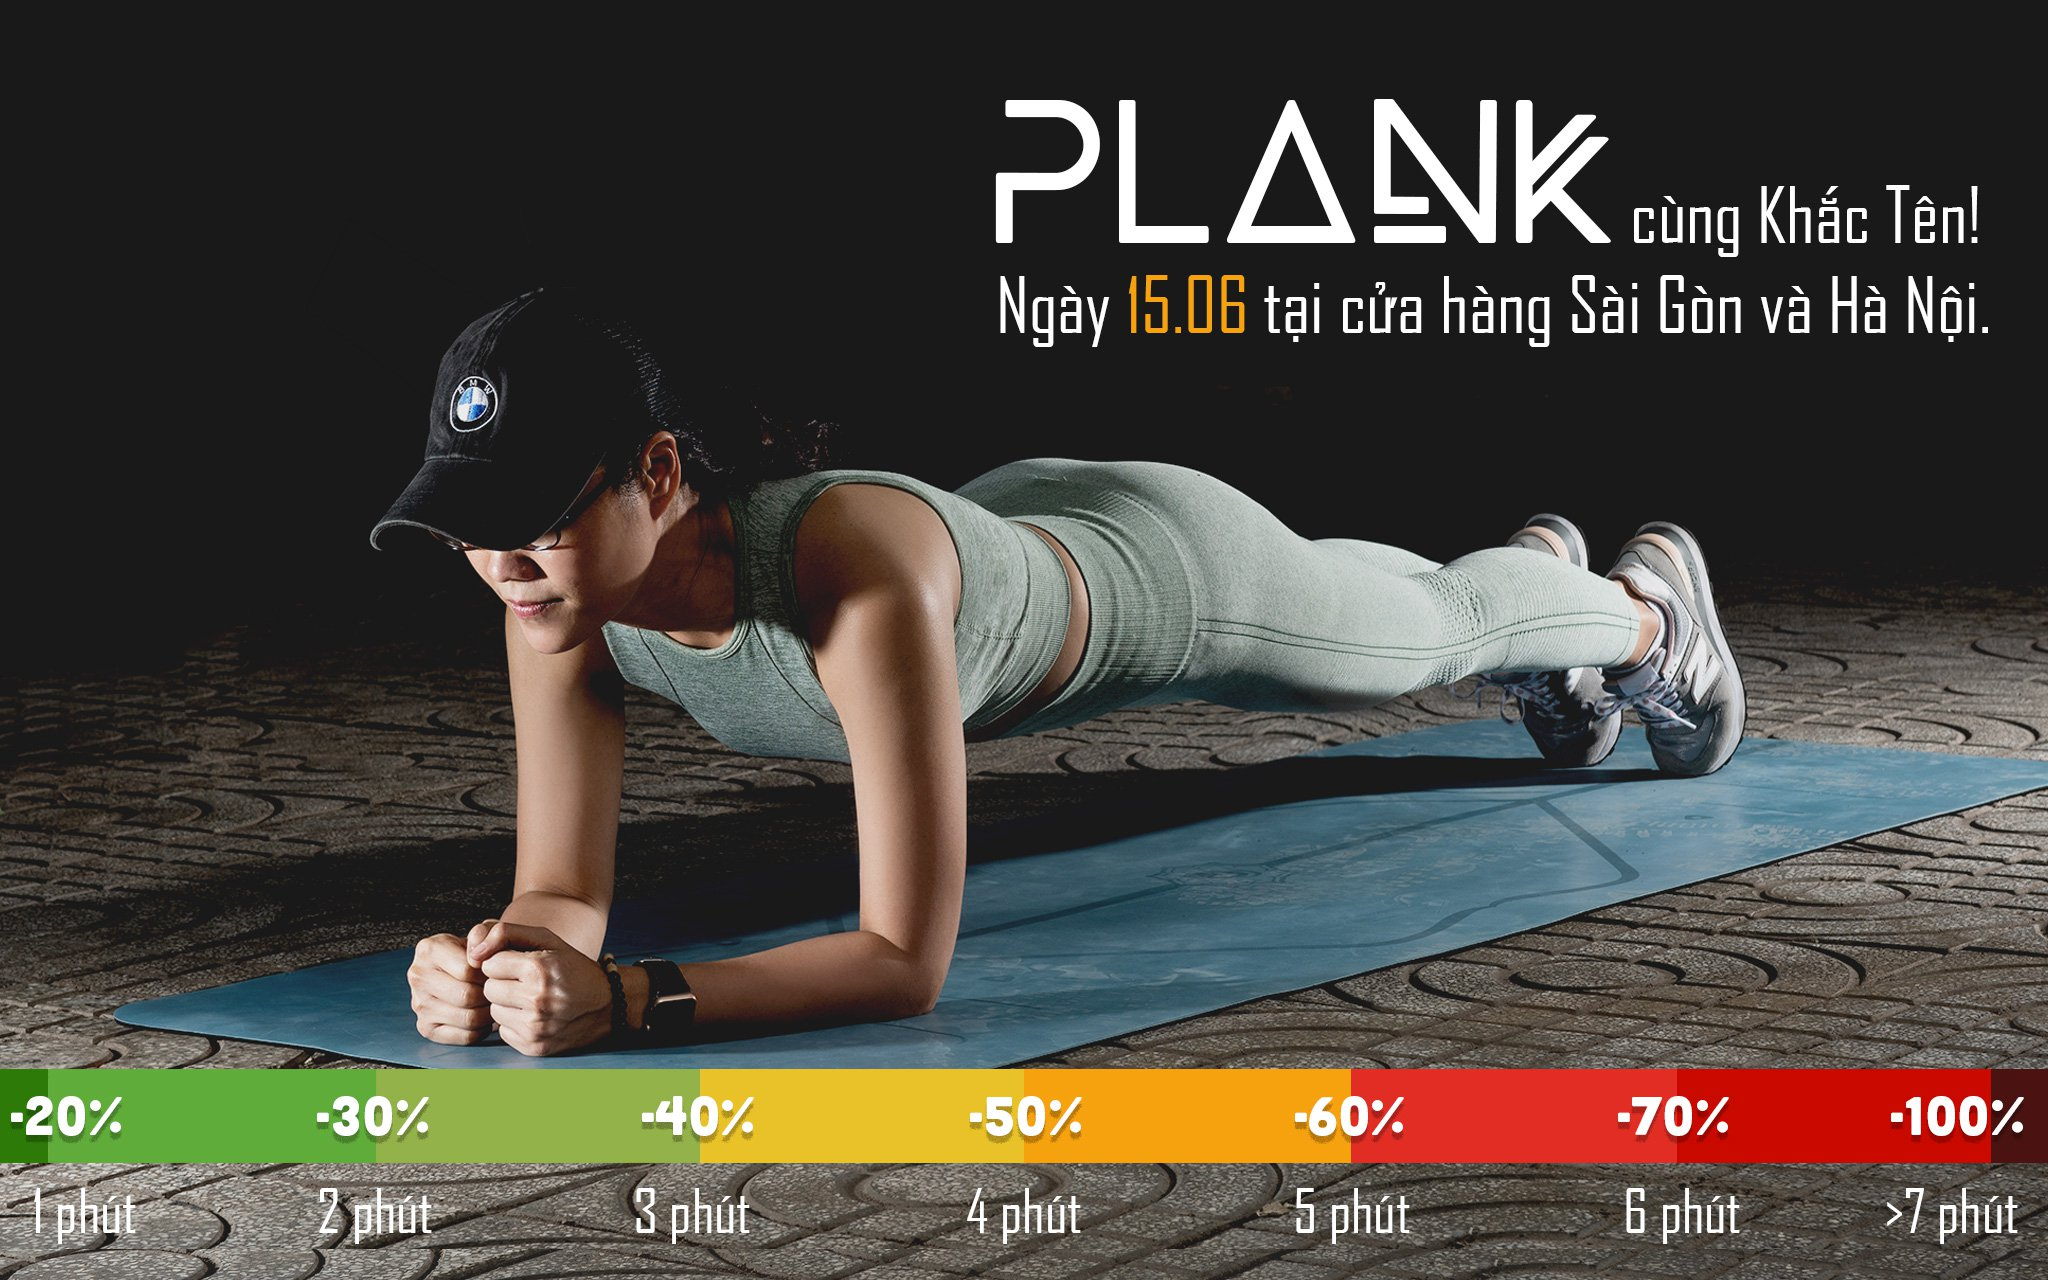 [QC] Invite to Khac Ten plank to receive promotion